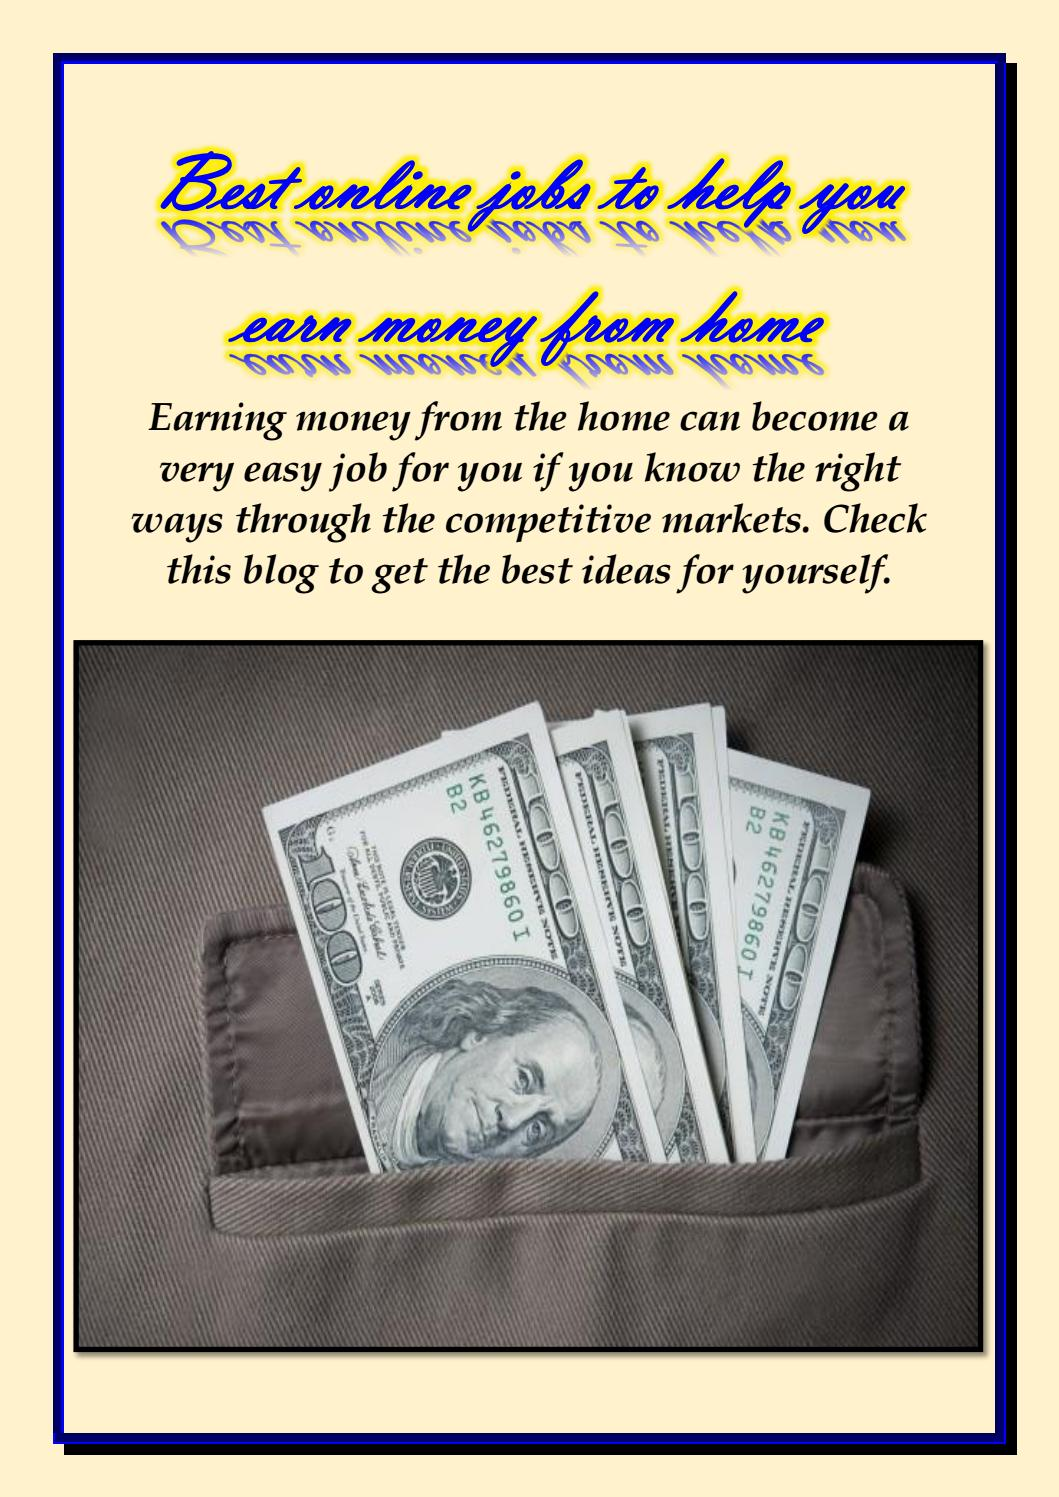 Best online job for earning money as a